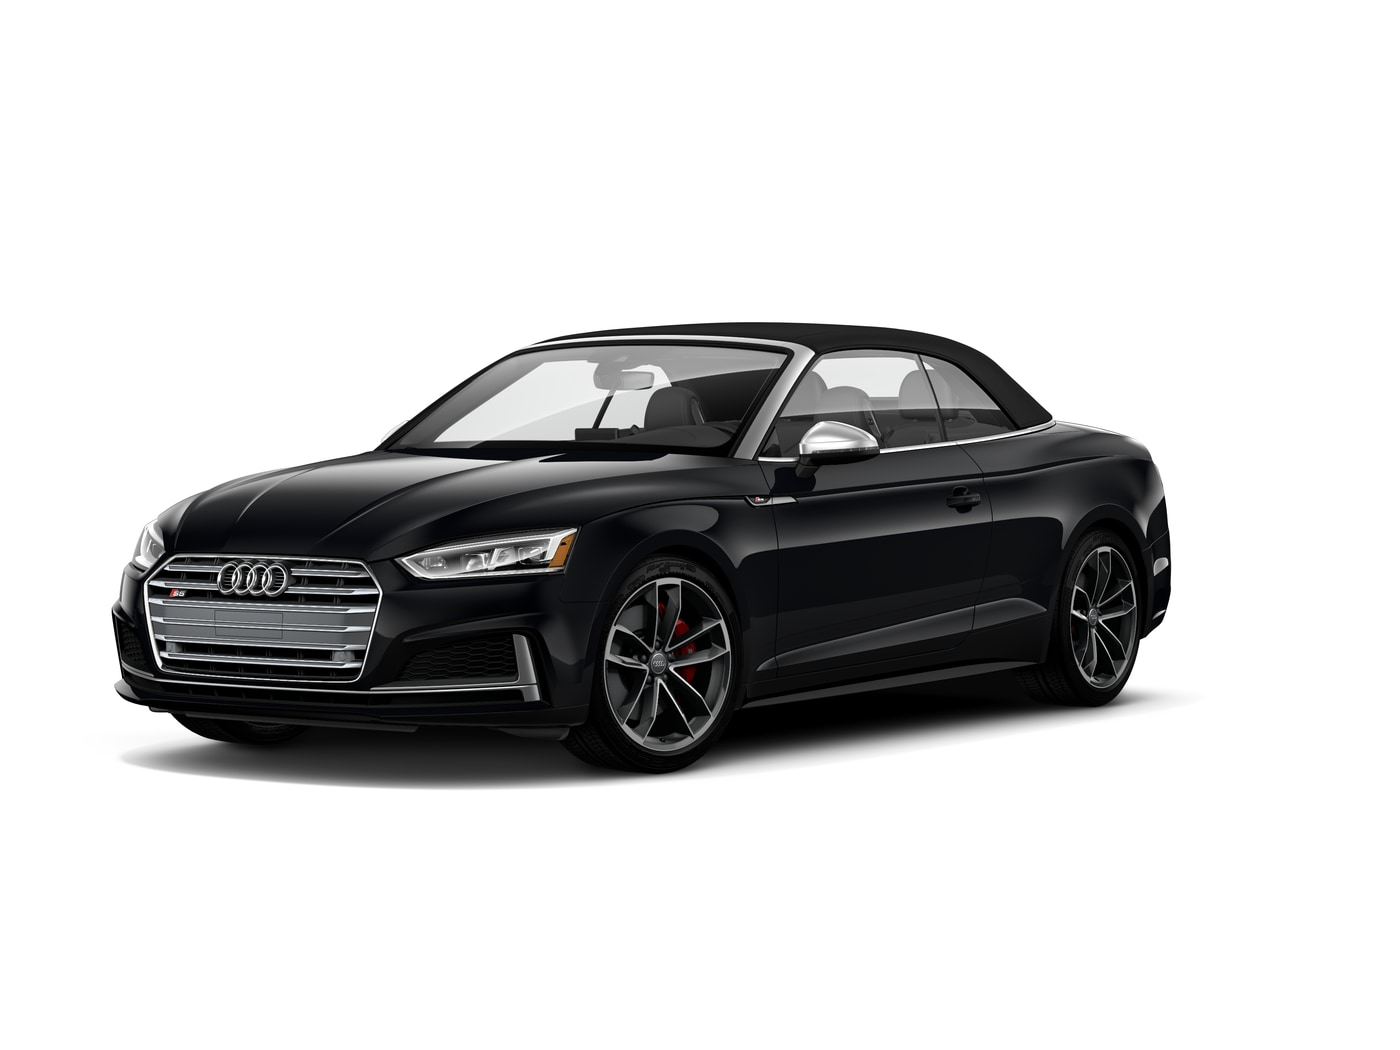 socal s we know showthread forum audi k suv guys you like